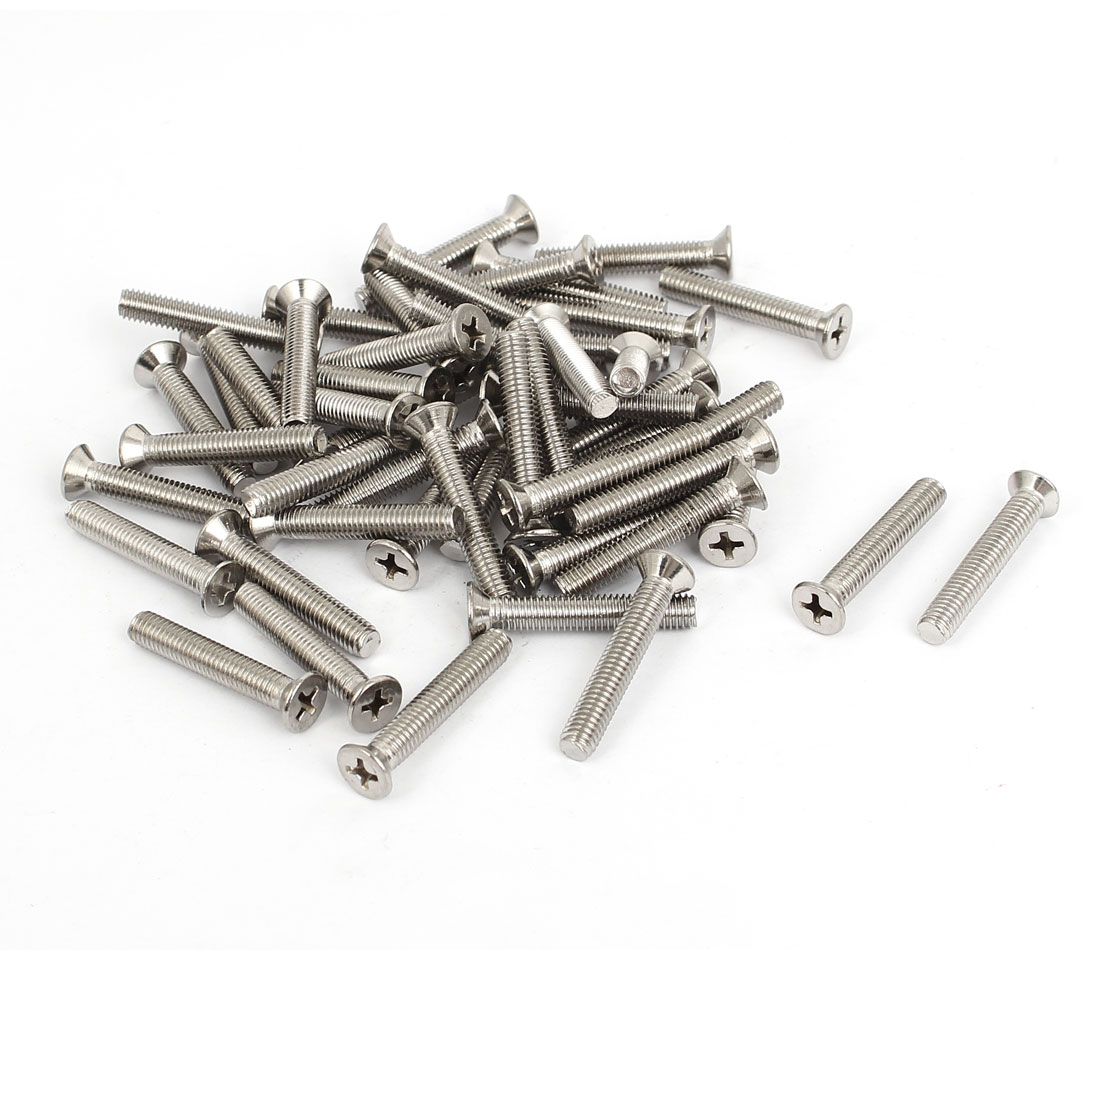 M5x30mm Stainless Steel Countersunk Flat Head Cross Phillips Screw Bolts 50pcs